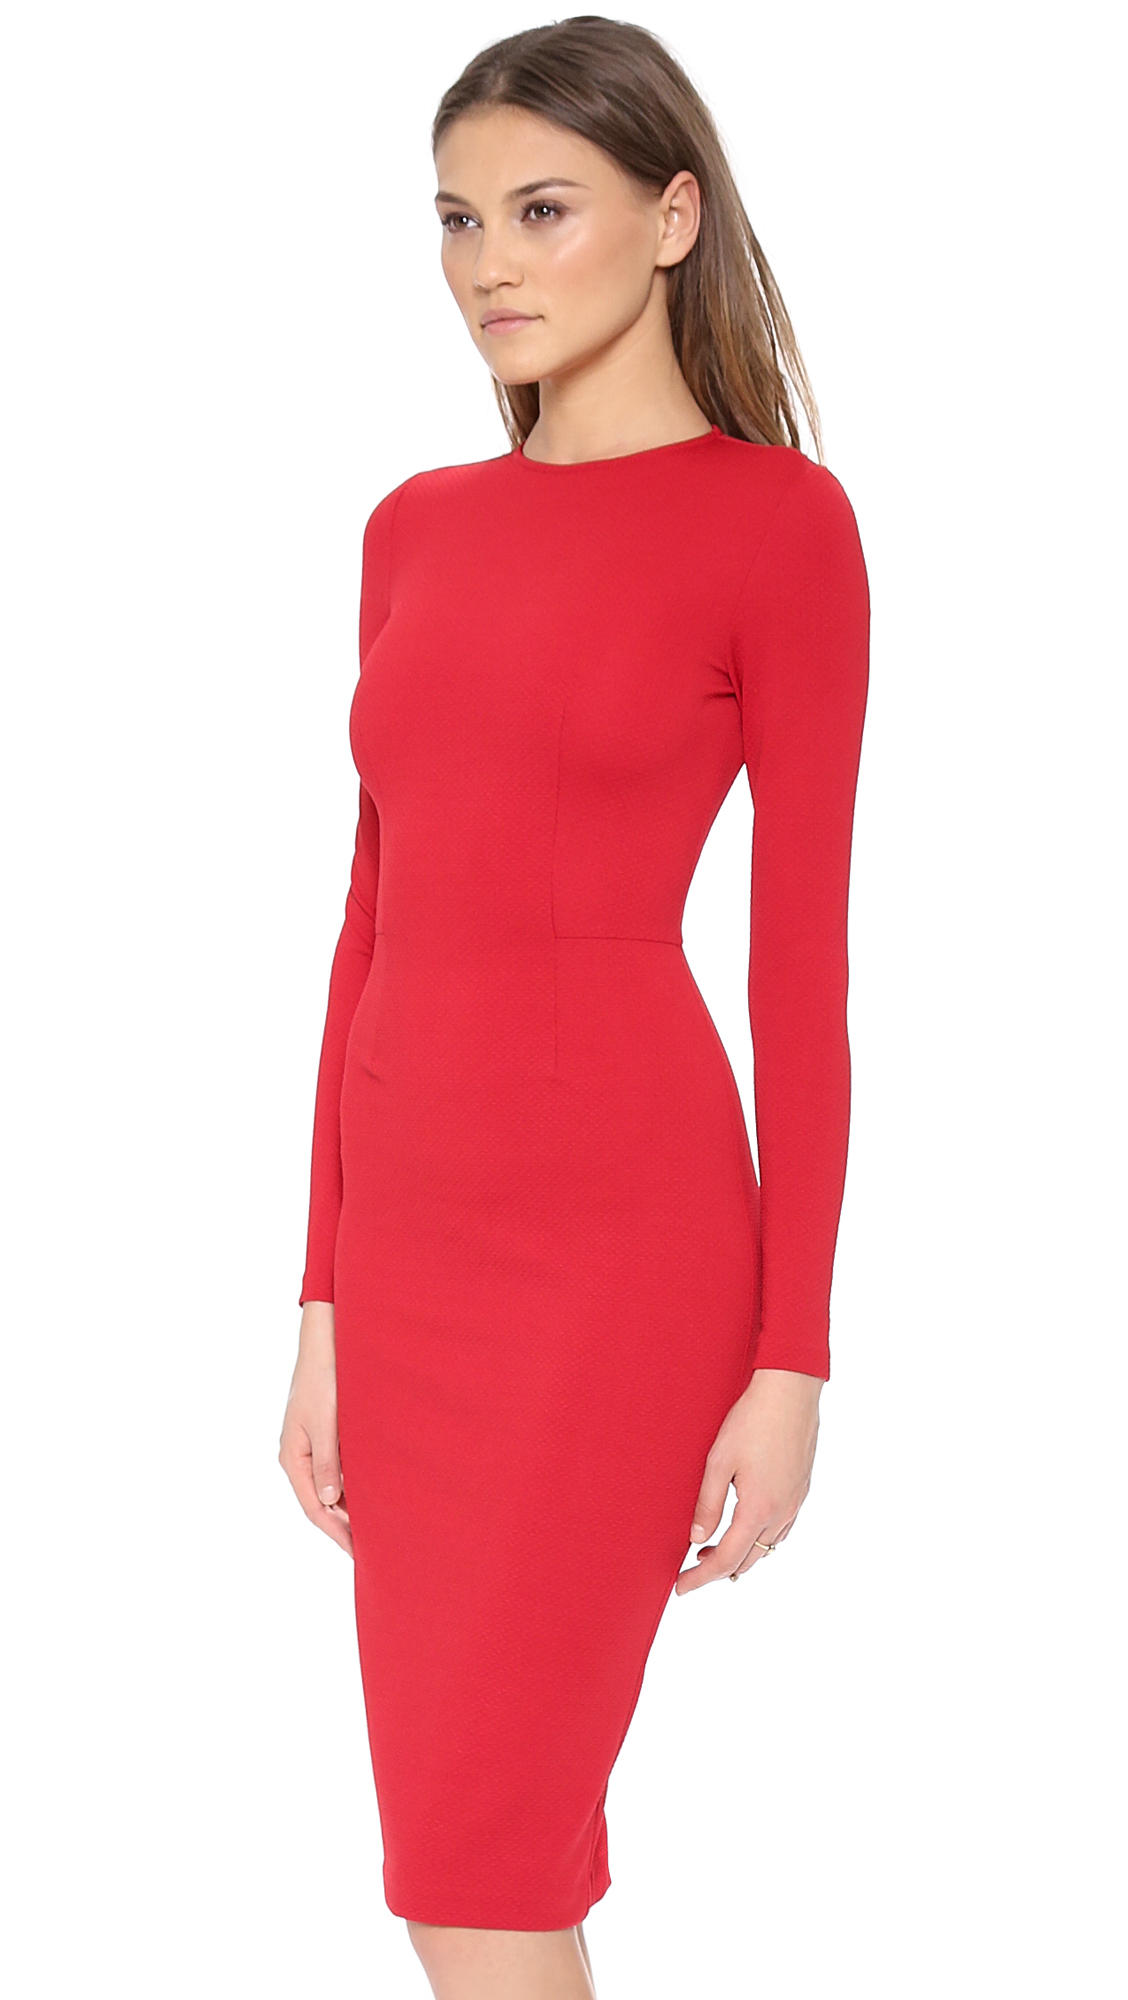 5th & Mercer Long Sleeve Dress | SHOPBOP